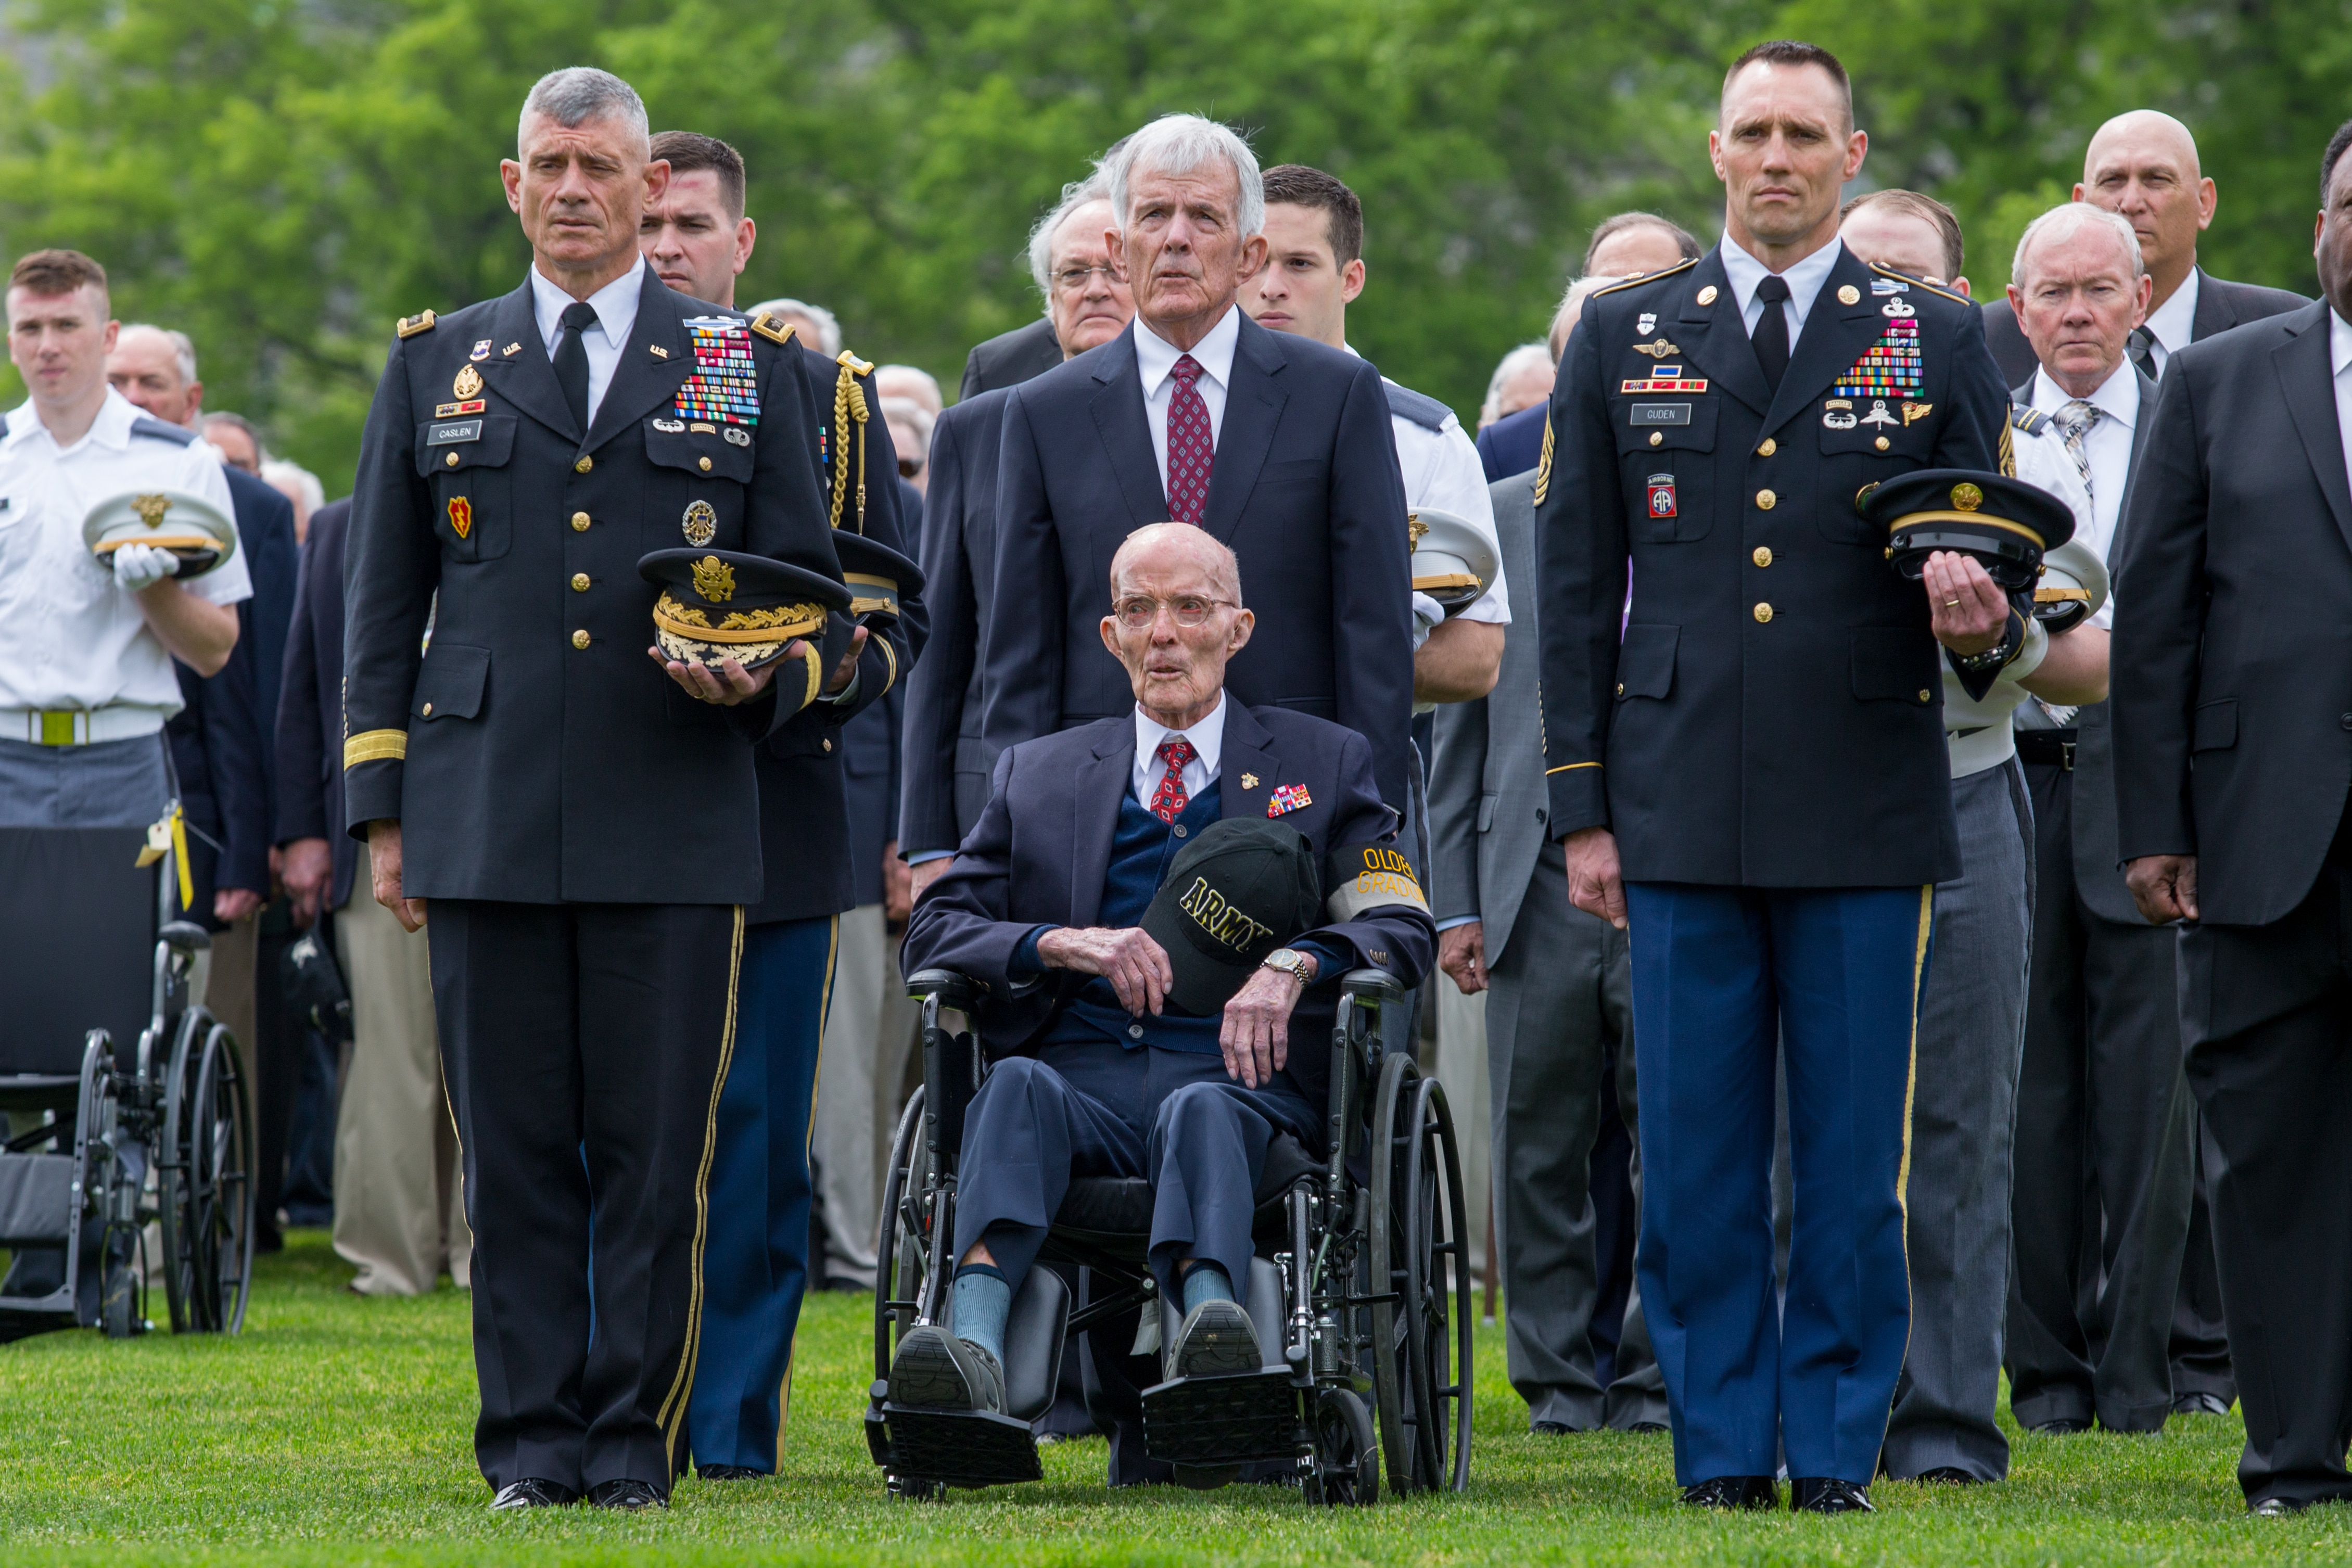 'Once in a lifetime': Oldest living West Point grad returns to academy after 84 years